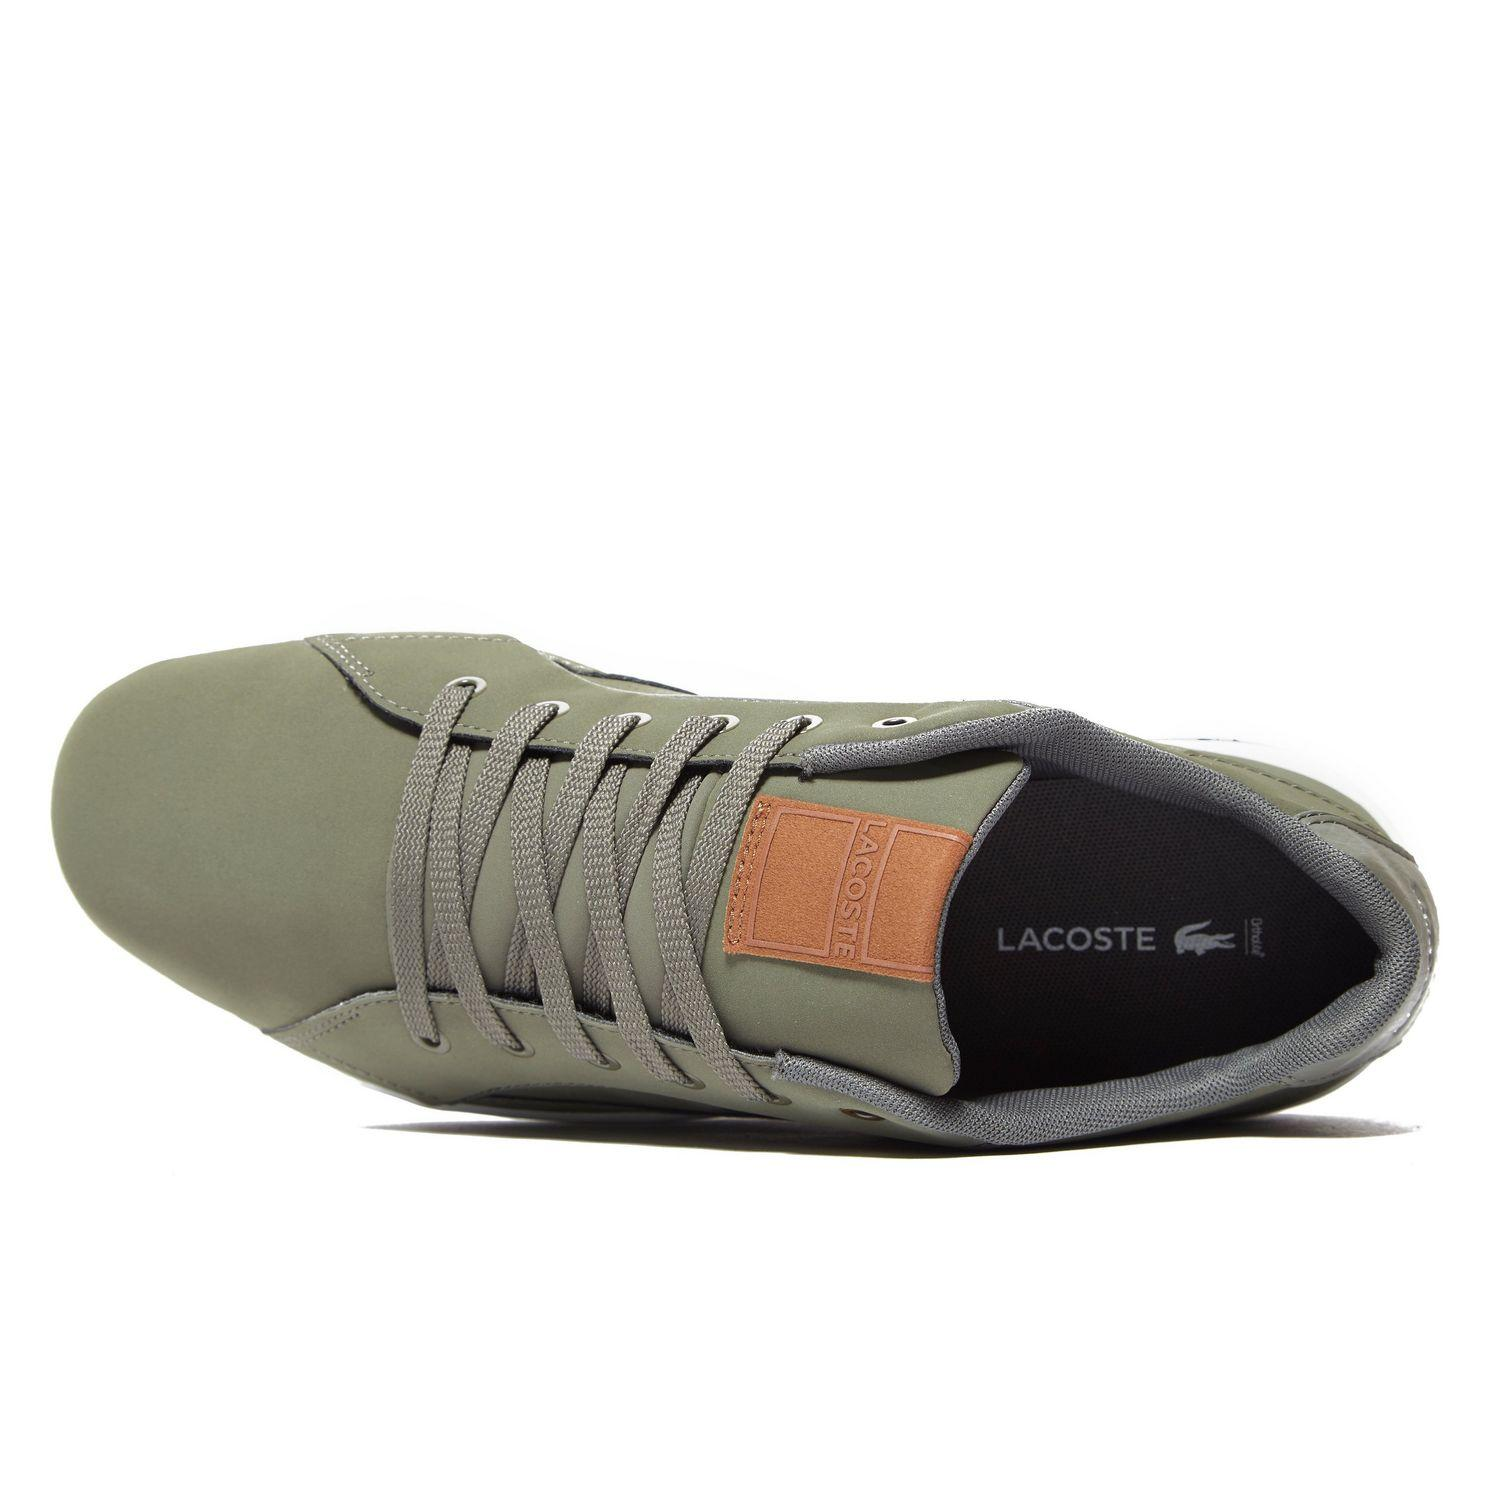 Lacoste Synthetic Deviation Ii in Olive